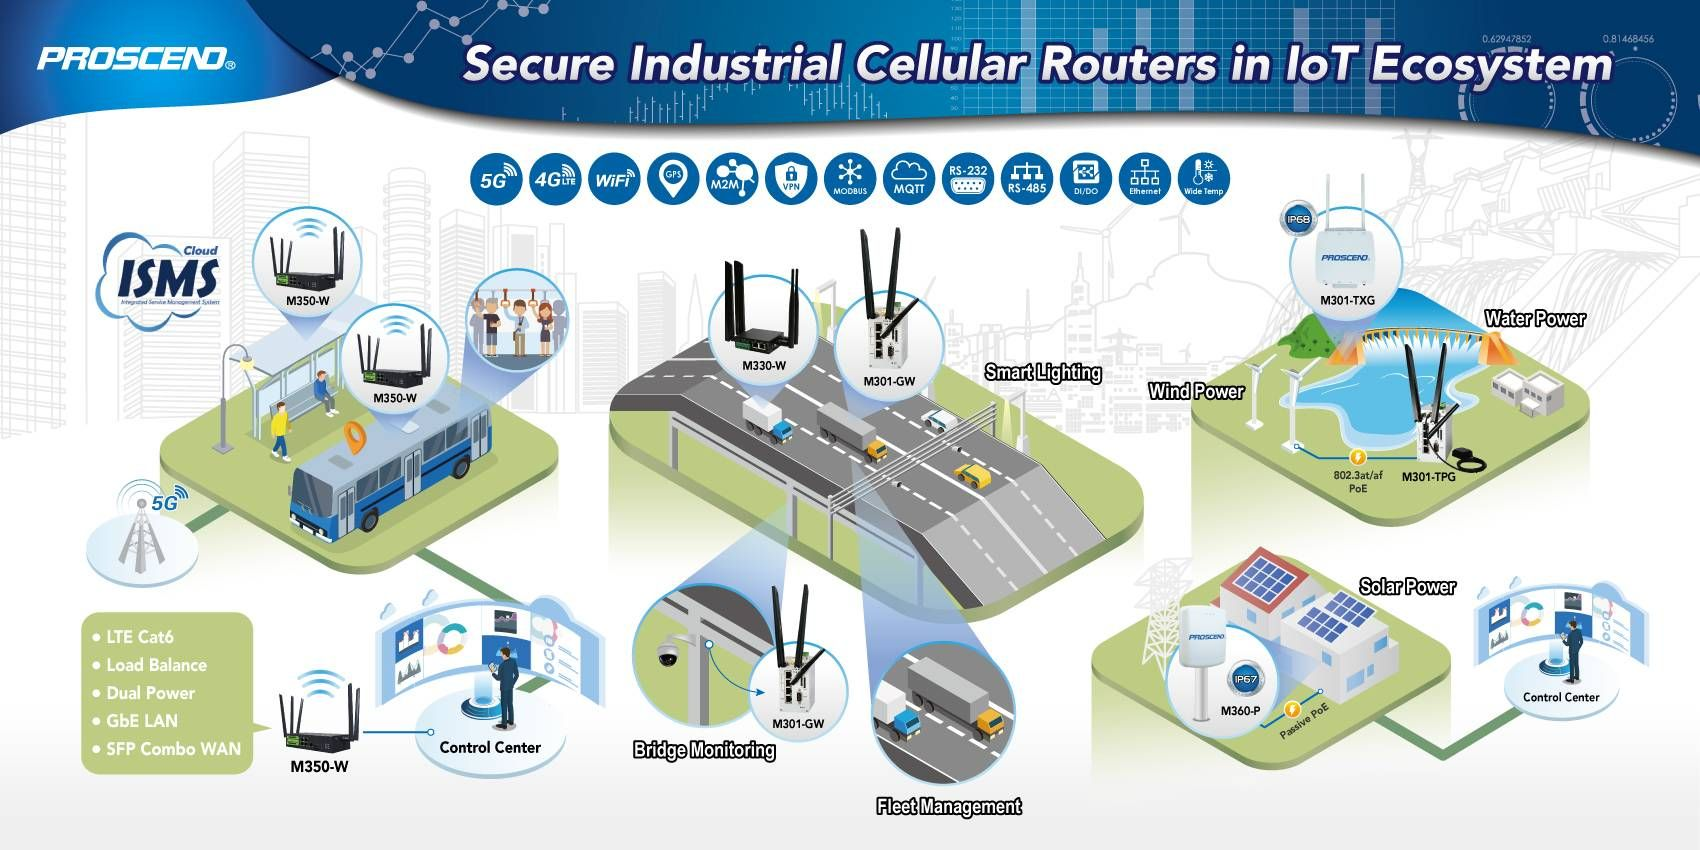 Secure Industrial Cellular Routers in IoT Ecosystem